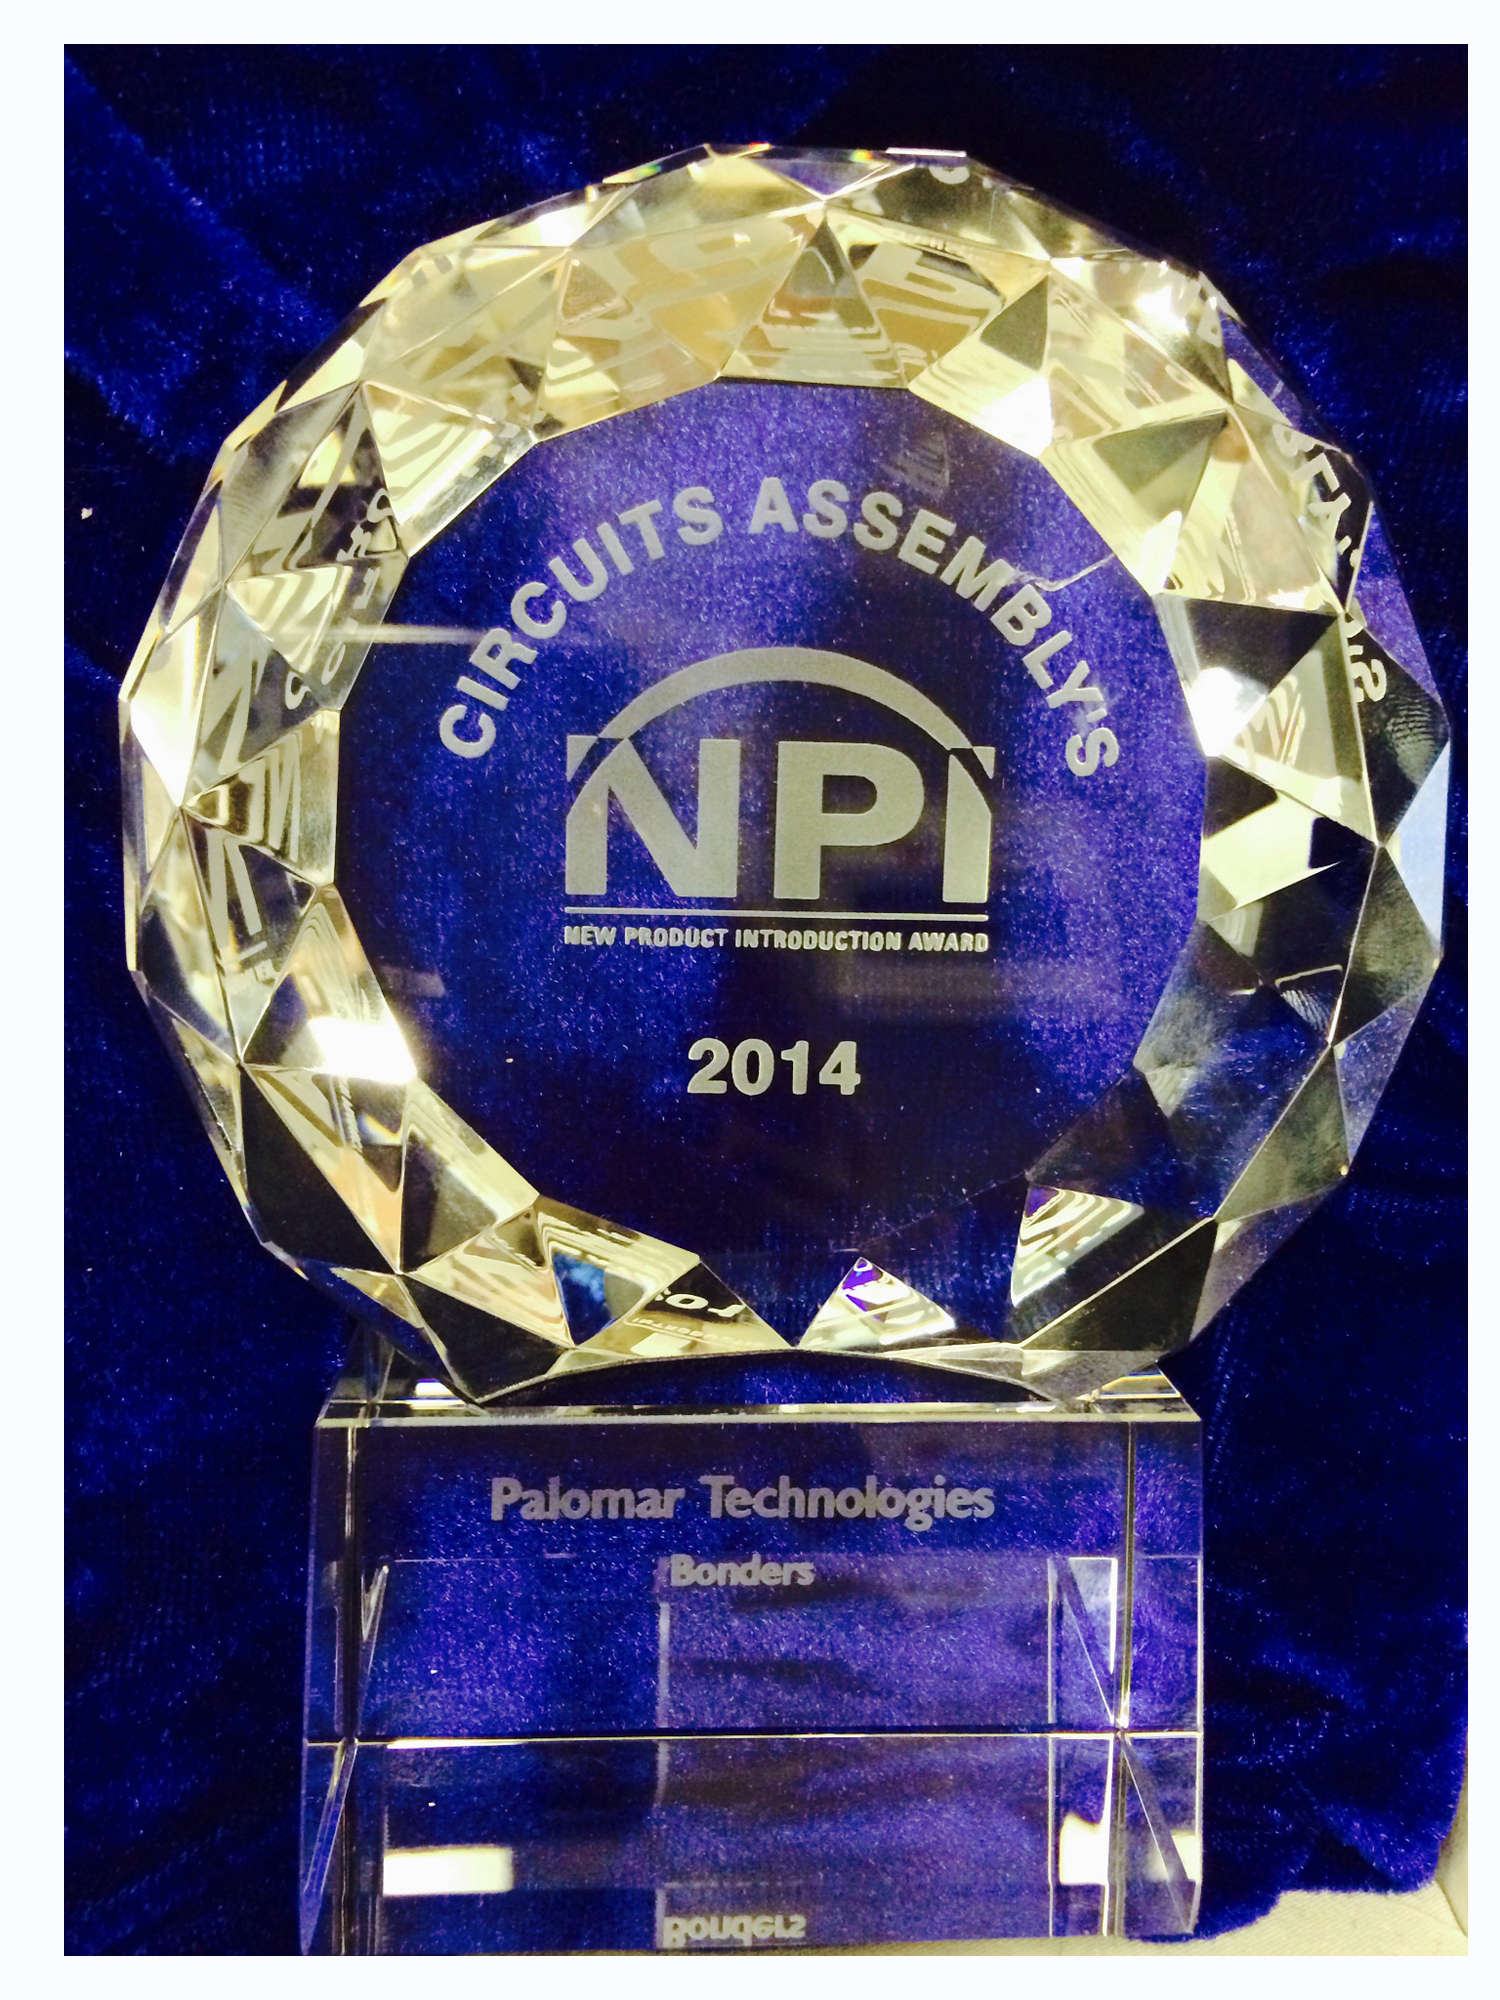 8000i Wire Bonder NPI award, Circuit Assembly, New Product Introduction